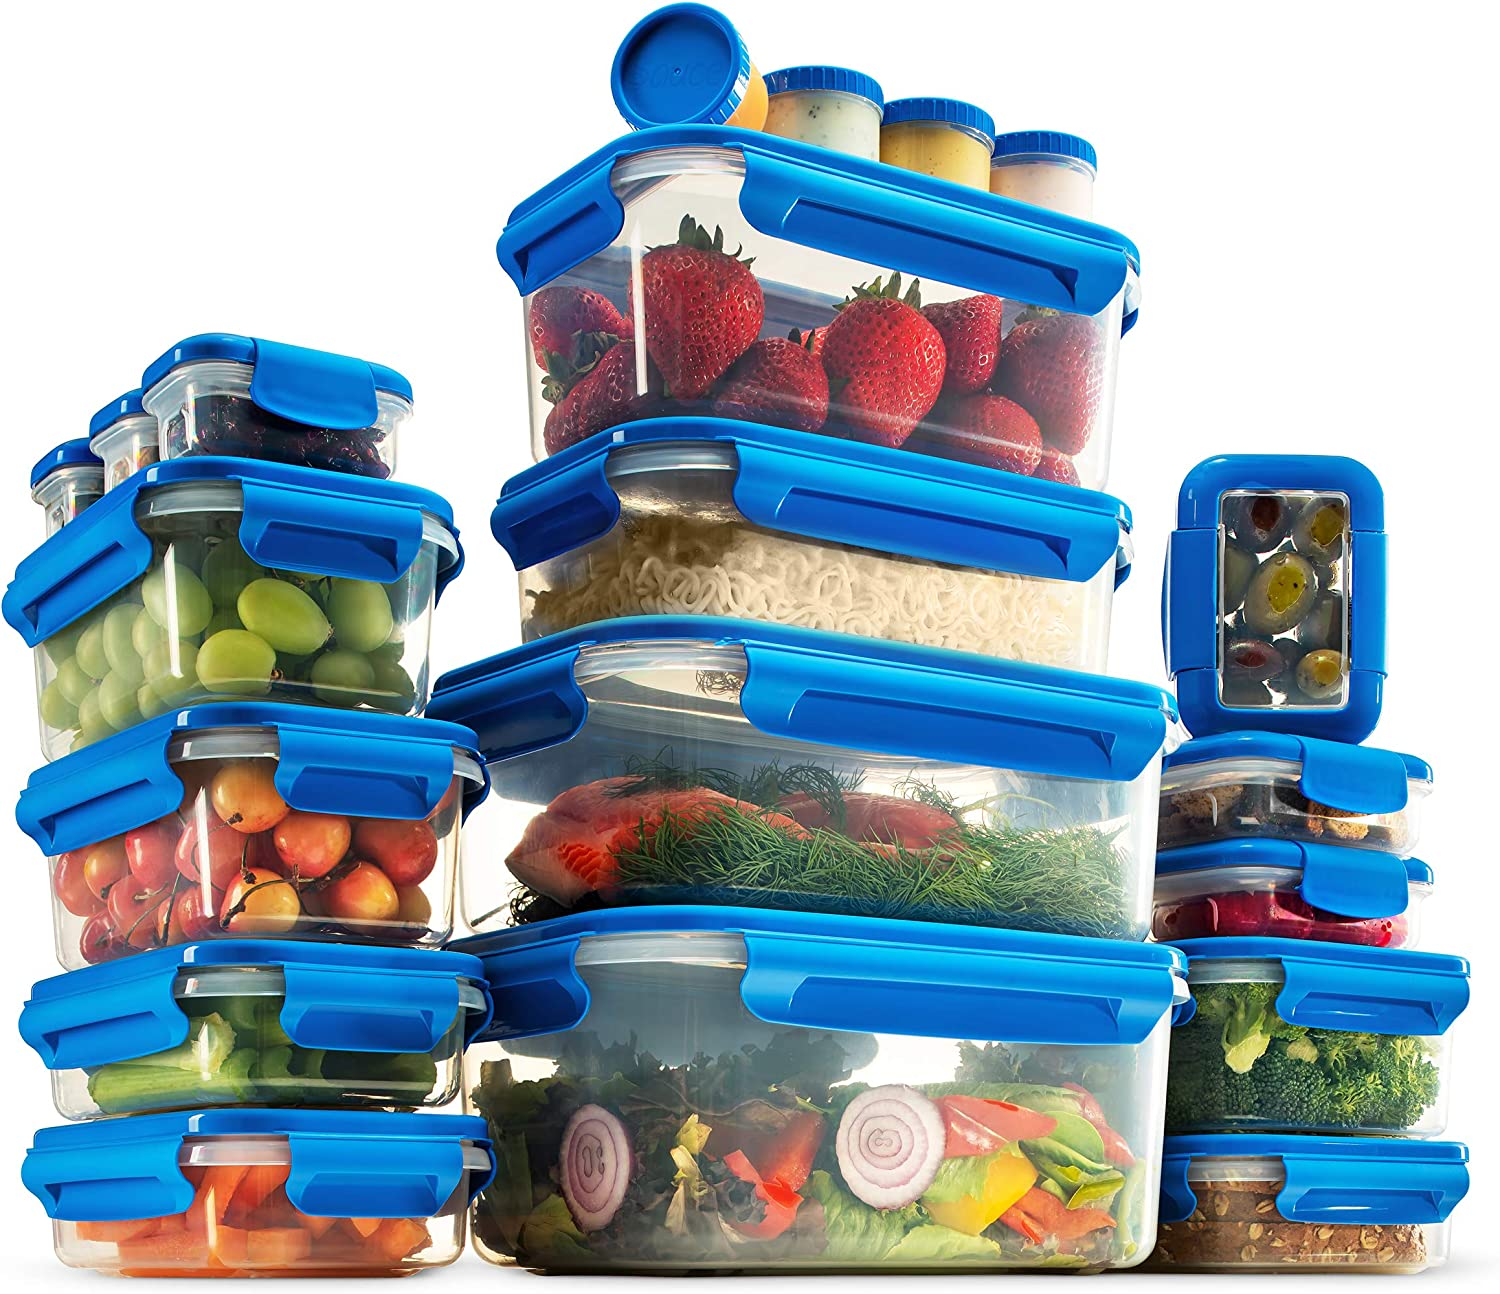 40-Piece Airtight Food Storage Containers Set With Lids - BPA Free Durable Plastic Food Containers Set - 100% Leak Proof Guaranteed - Freezer, Microwave & Dishwasher Safe - Leftover, Meal Prep Etc.